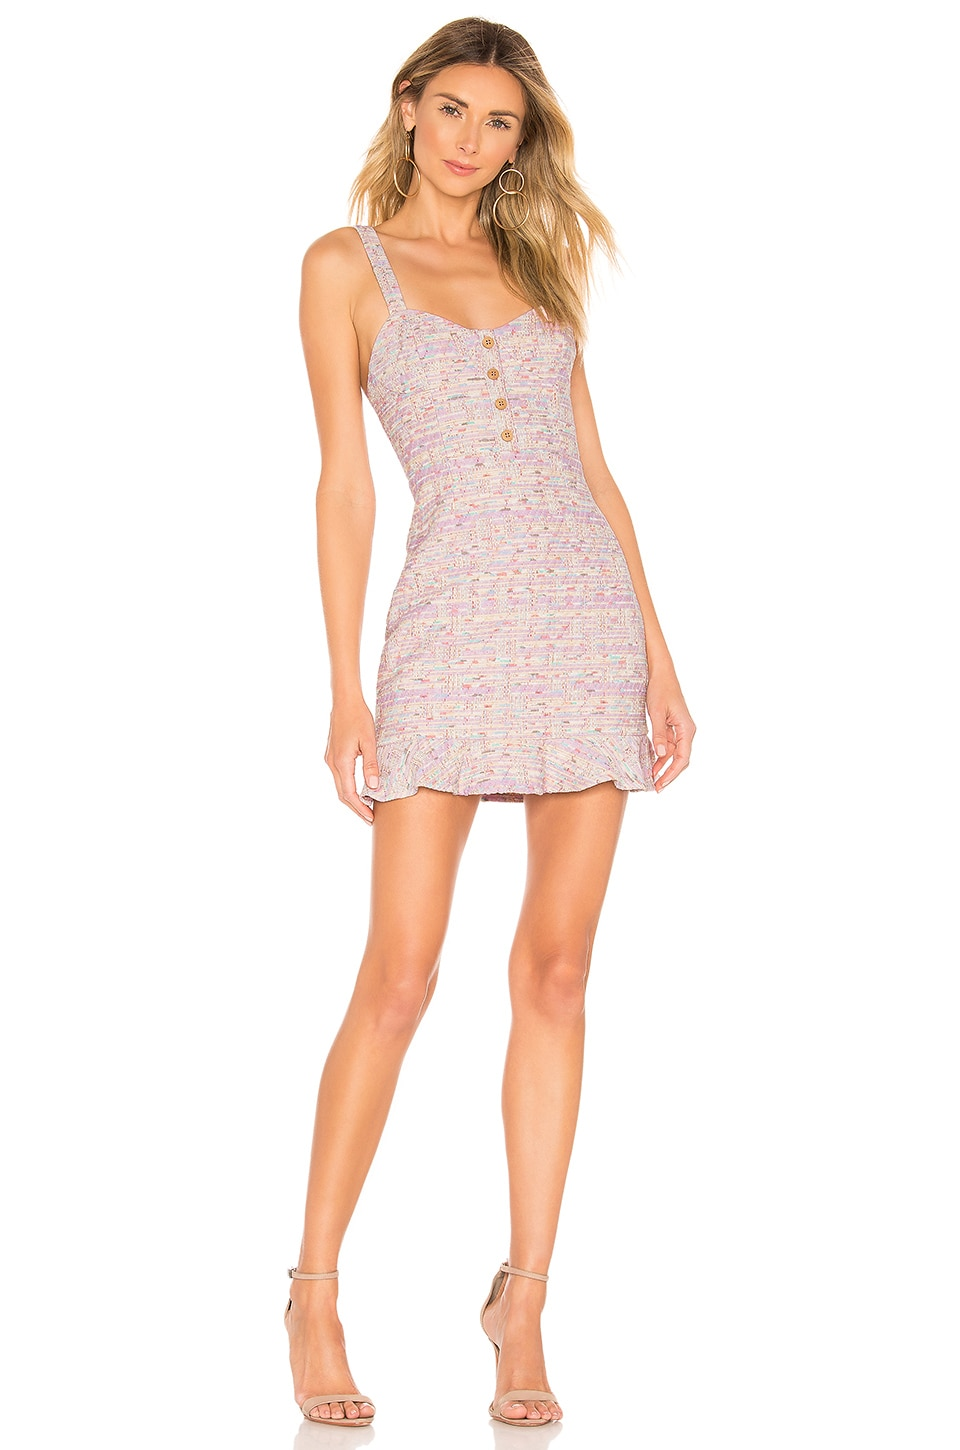 Privacy Please Raquel Mini Dress in Lavender Multi